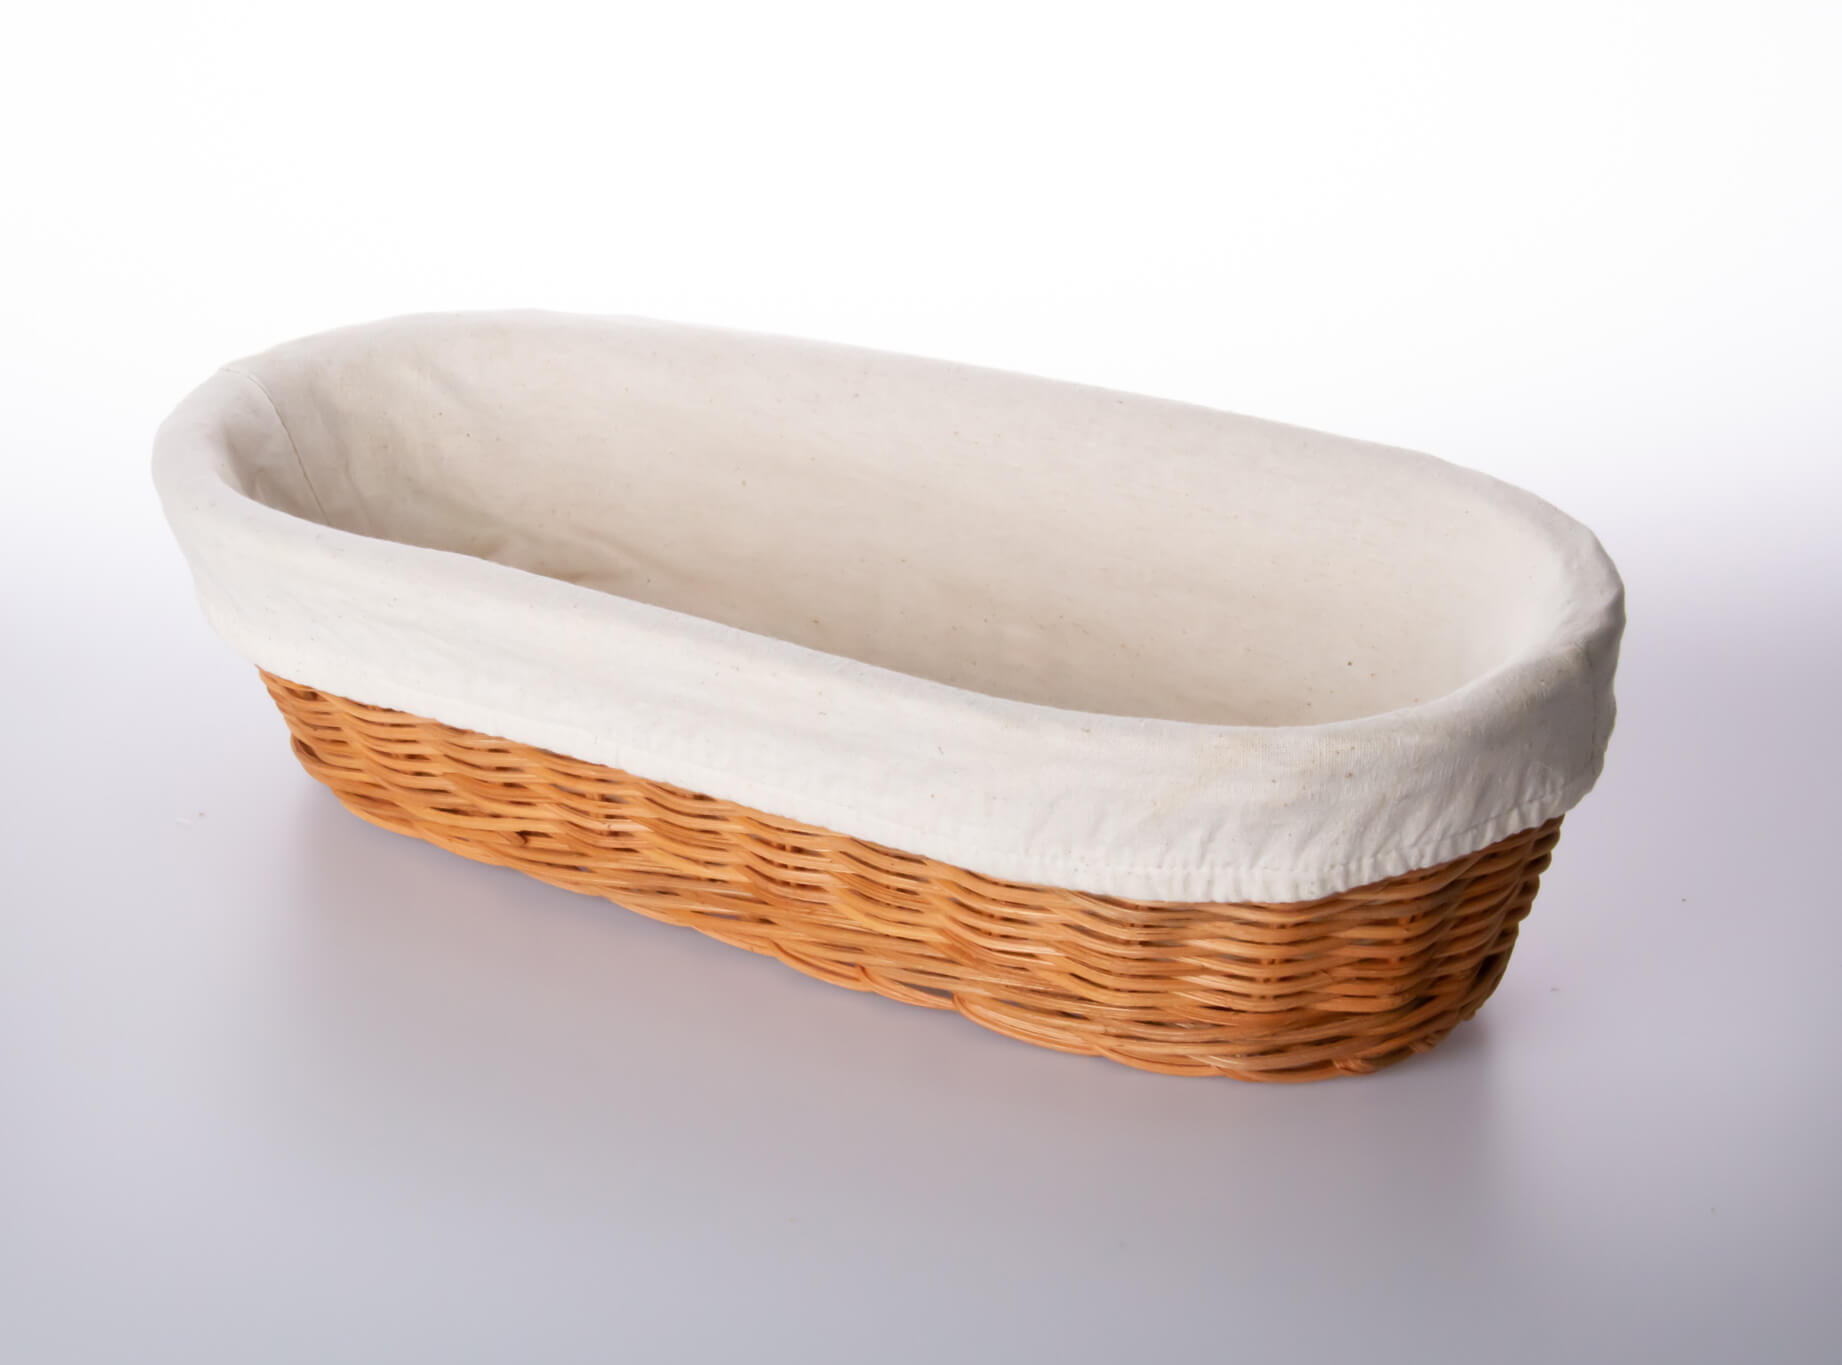 Creeds Proofing Baskets/ Bannetons